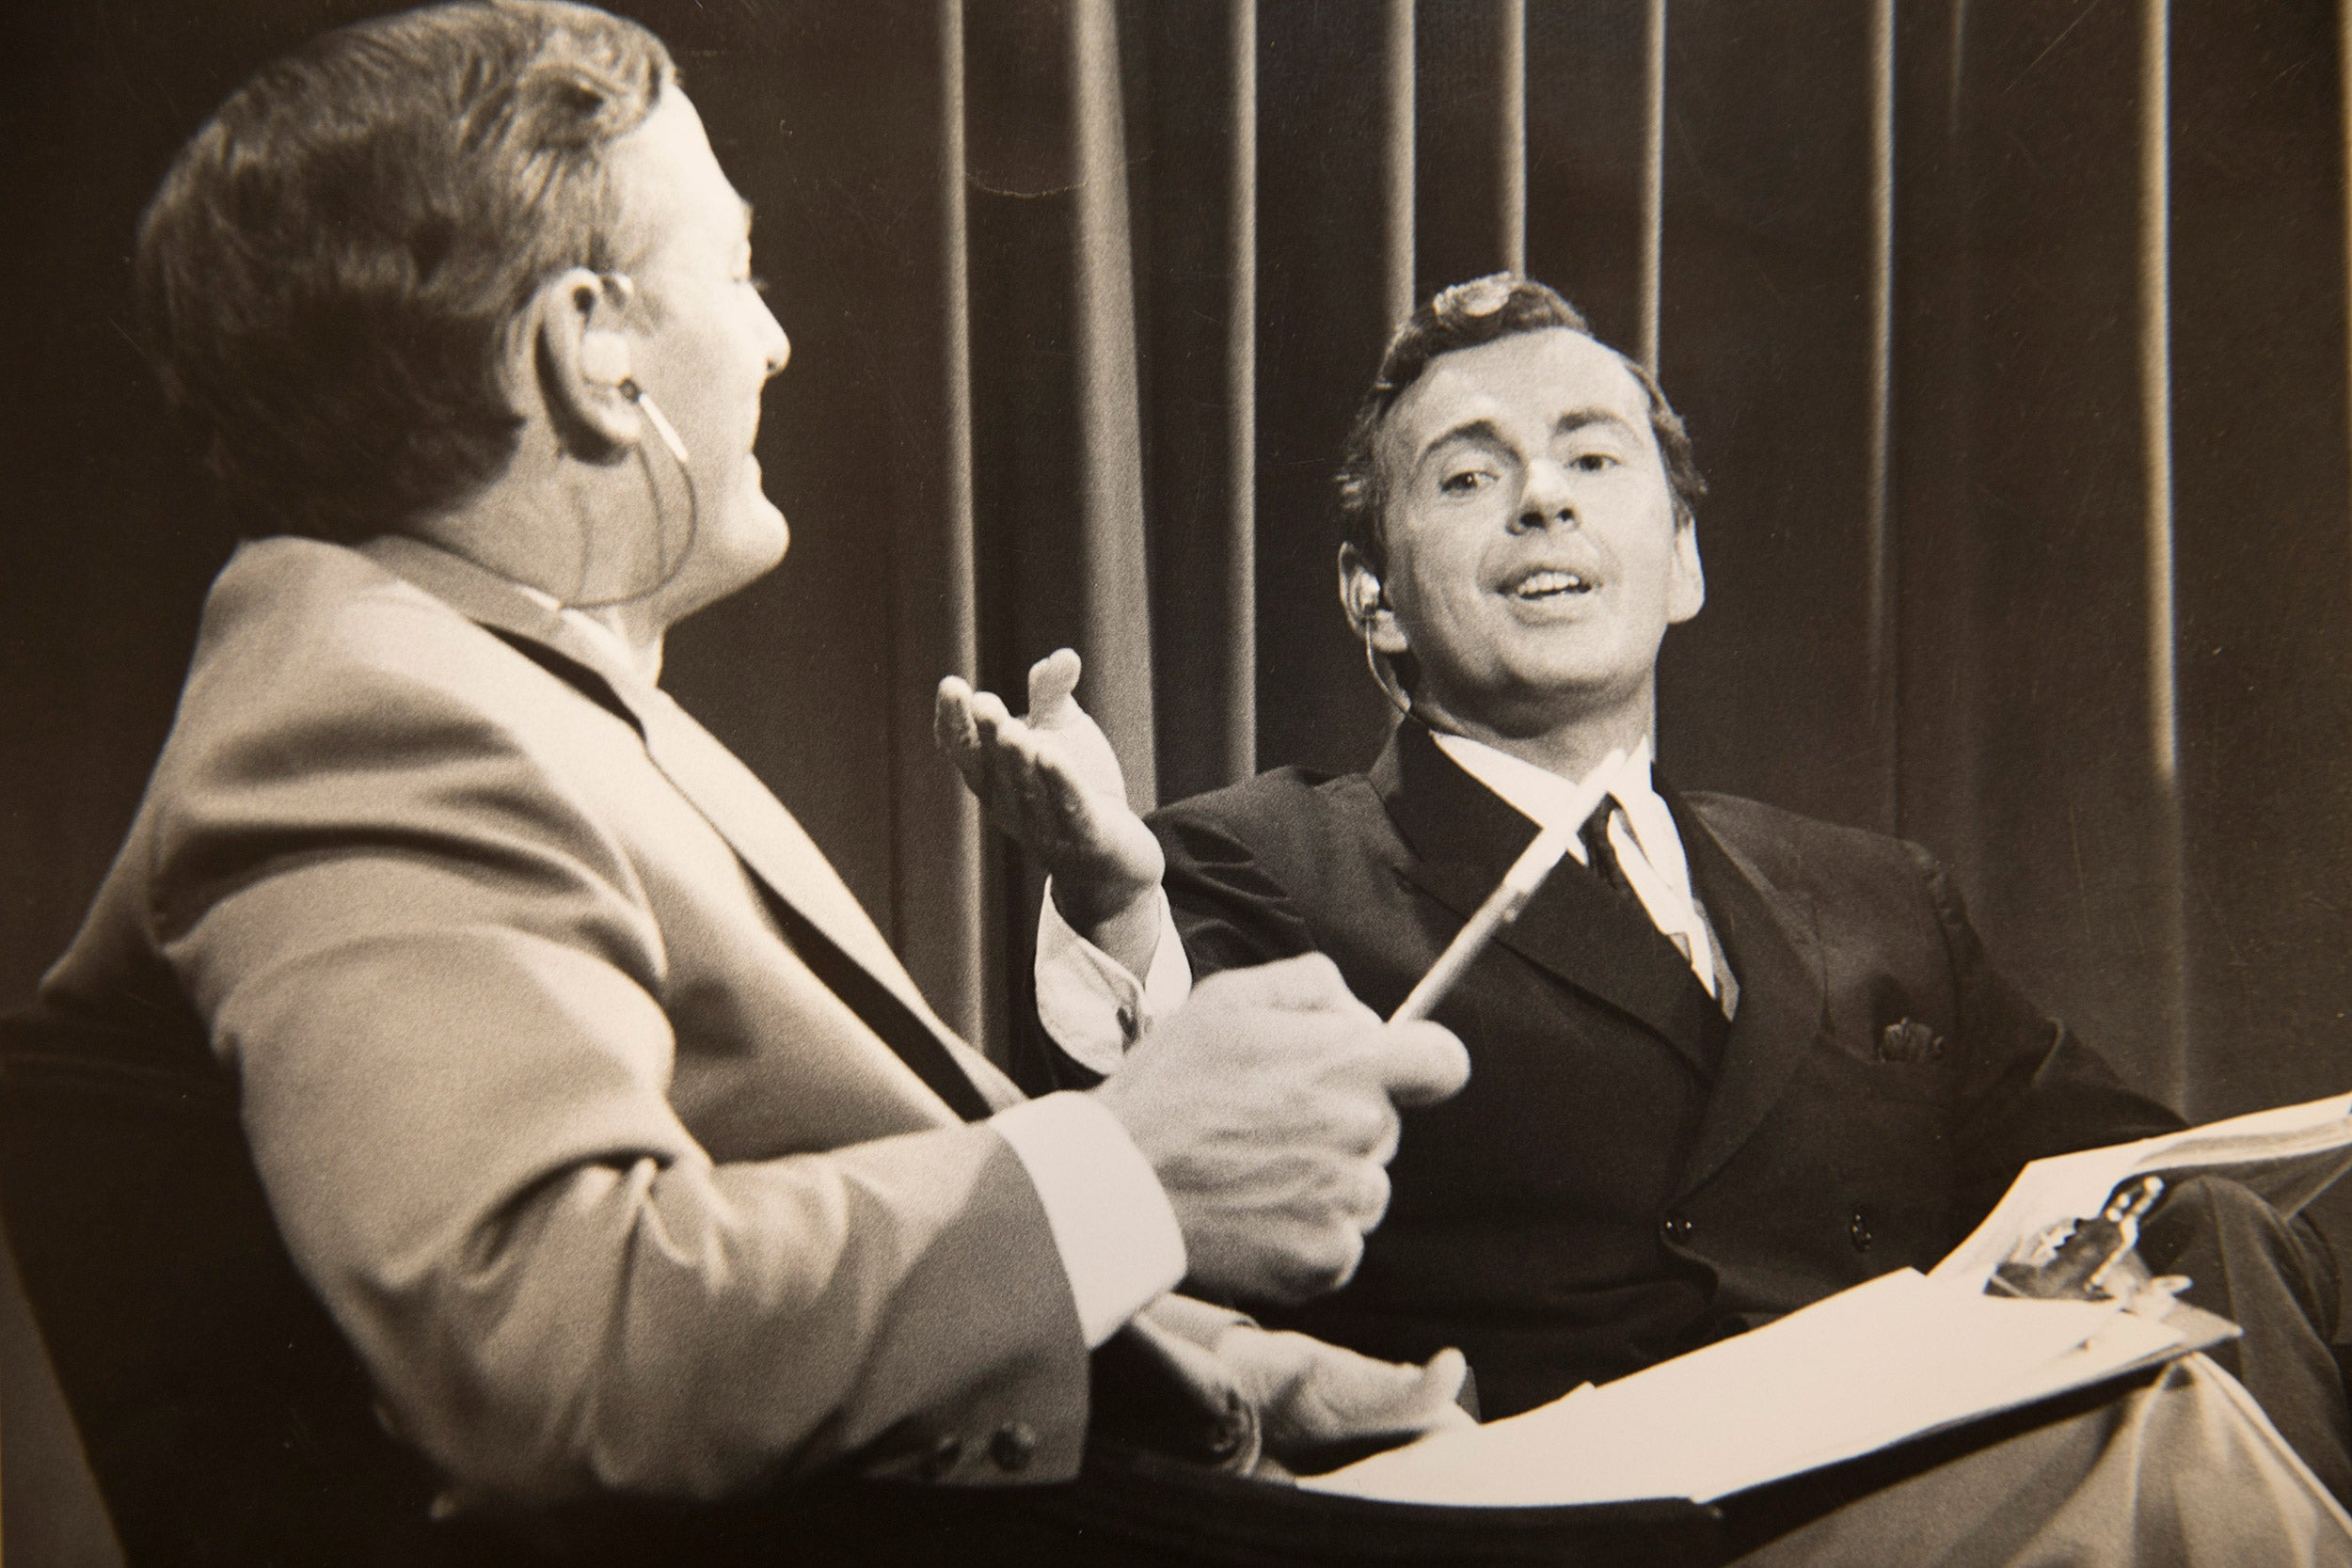 Arts & Humanities. The life and legacy of Gore Vidal